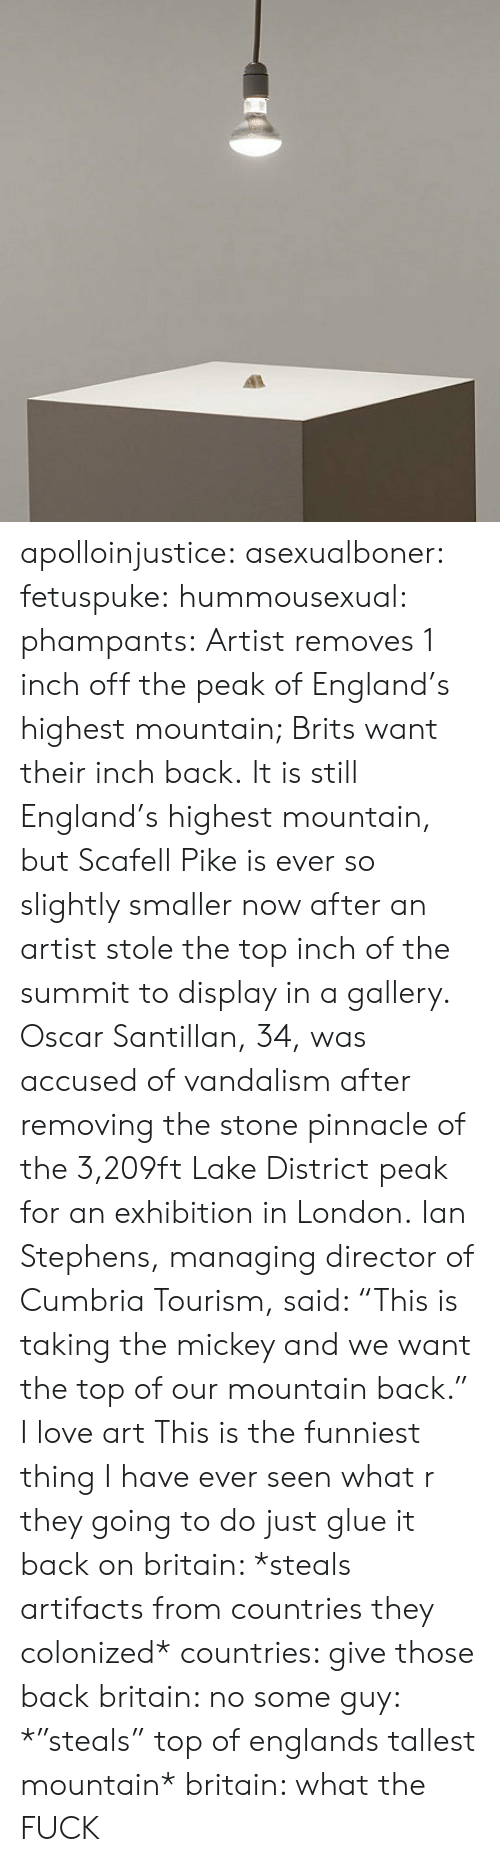 """vandalism: apolloinjustice:  asexualboner:  fetuspuke:   hummousexual:   phampants:   Artist removes 1 inch off the peak of England's highest mountain; Brits want their inch back. It is still England's highest mountain, but Scafell Pike is ever so slightly smaller now after an artist stole the top inch of the summit to display in a gallery. Oscar Santillan, 34, was accused of vandalism after removing the stone pinnacle of the 3,209ft Lake District peak for an exhibition in London. Ian Stephens, managing director of Cumbria Tourism, said: """"This is taking the mickey and we want the top of our mountain back.""""   I love art   This is the funniest thing I have ever seen   what r they going to do just glue it back on   britain: *steals artifacts from countries they colonized* countries: give those back britain: no some guy: *""""steals"""" top of englands tallest mountain* britain: what the FUCK"""